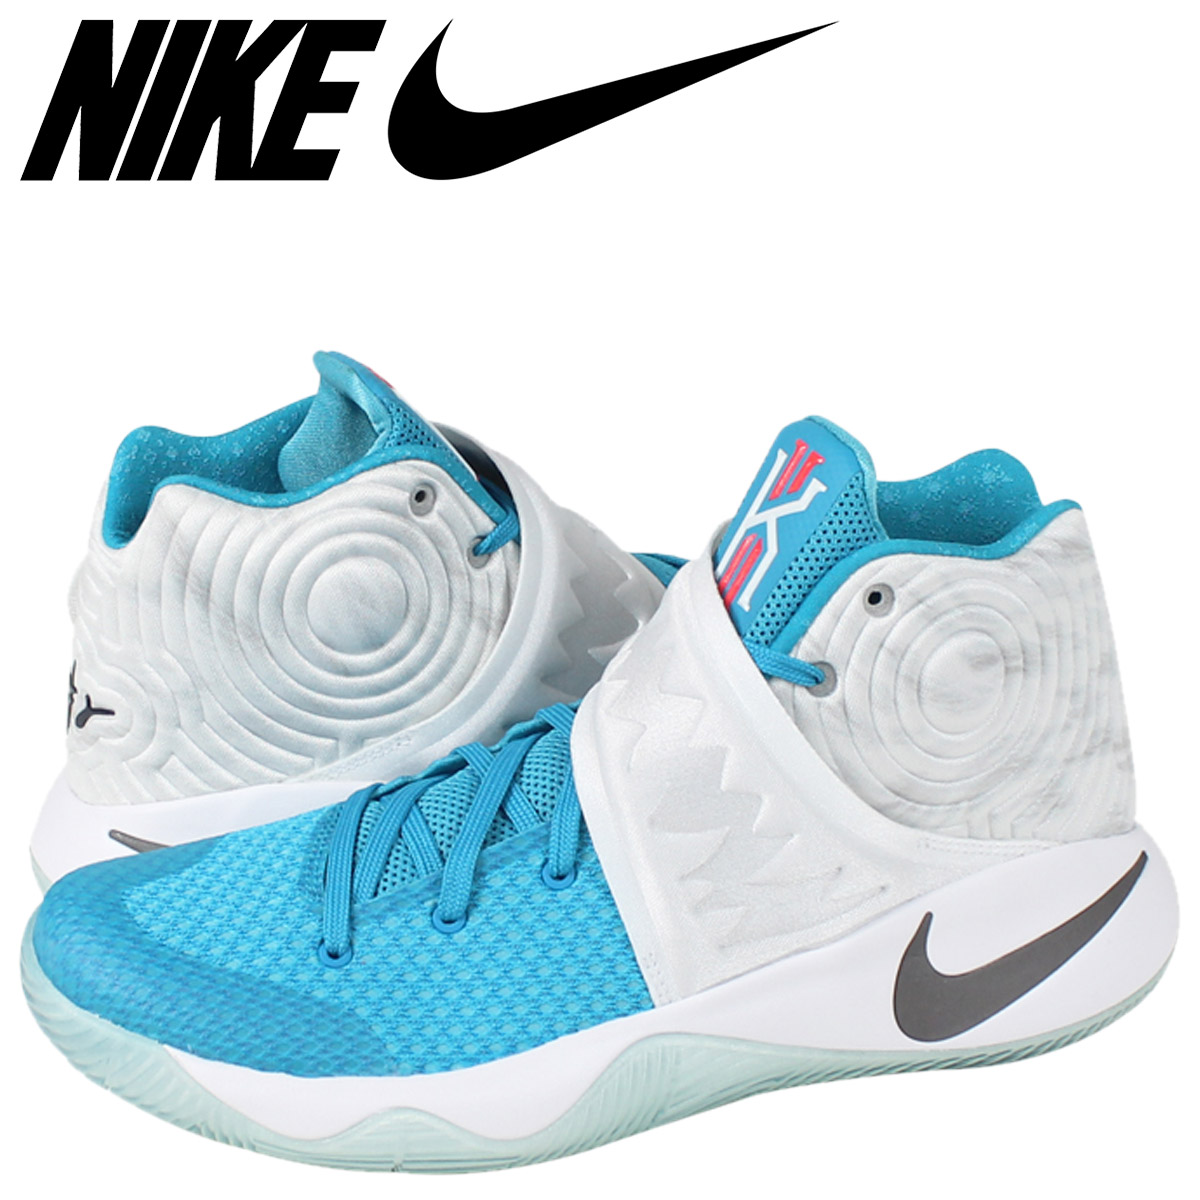 sold out nike nike kylie sneakers kyrie 2 xmas kylie 2 christmas 823108 144 white mens